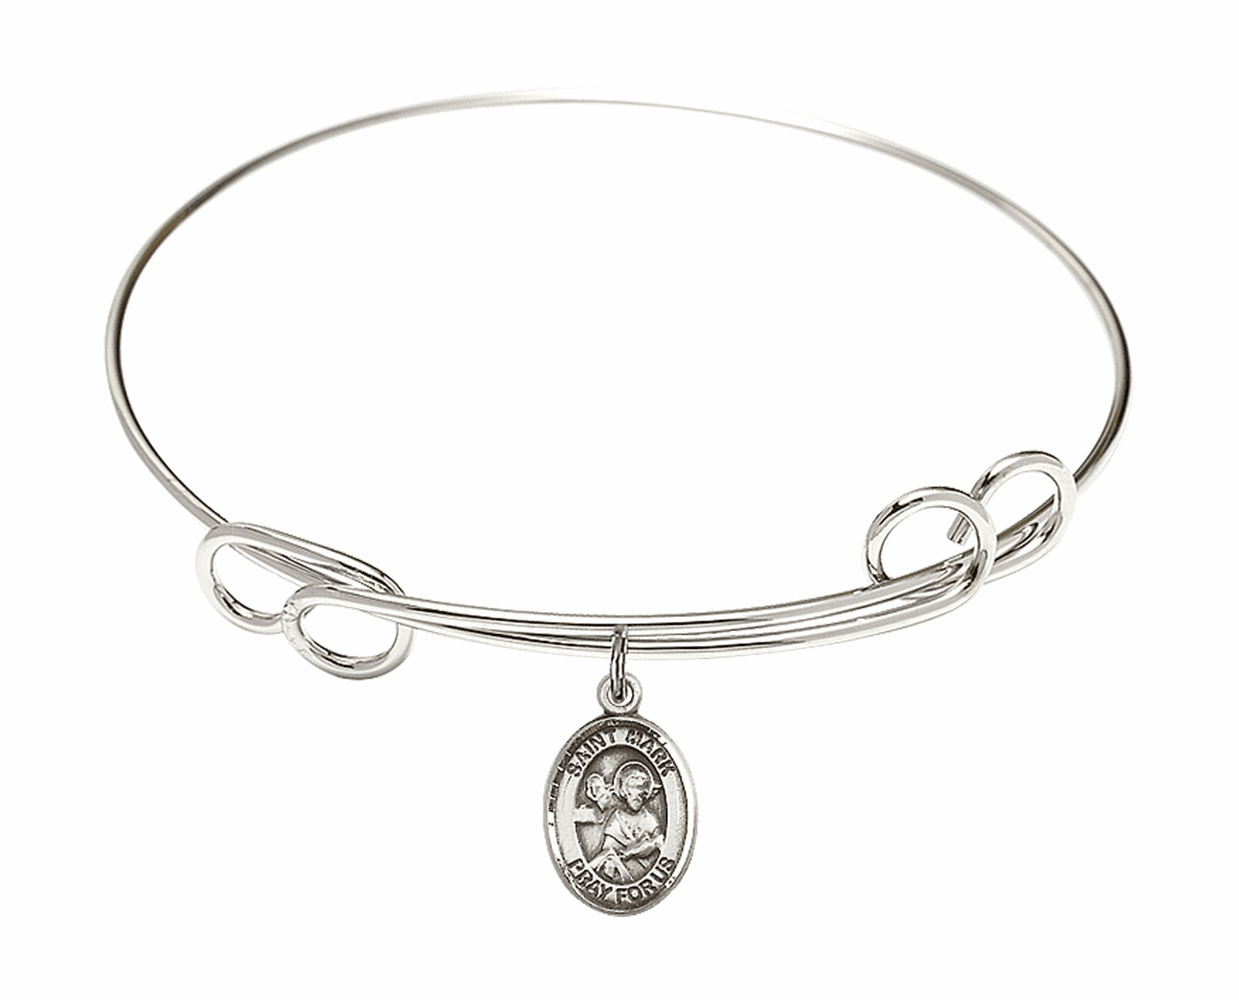 Round Loop St Mark the Evangelist Bangle Charm Bracelet by Bliss